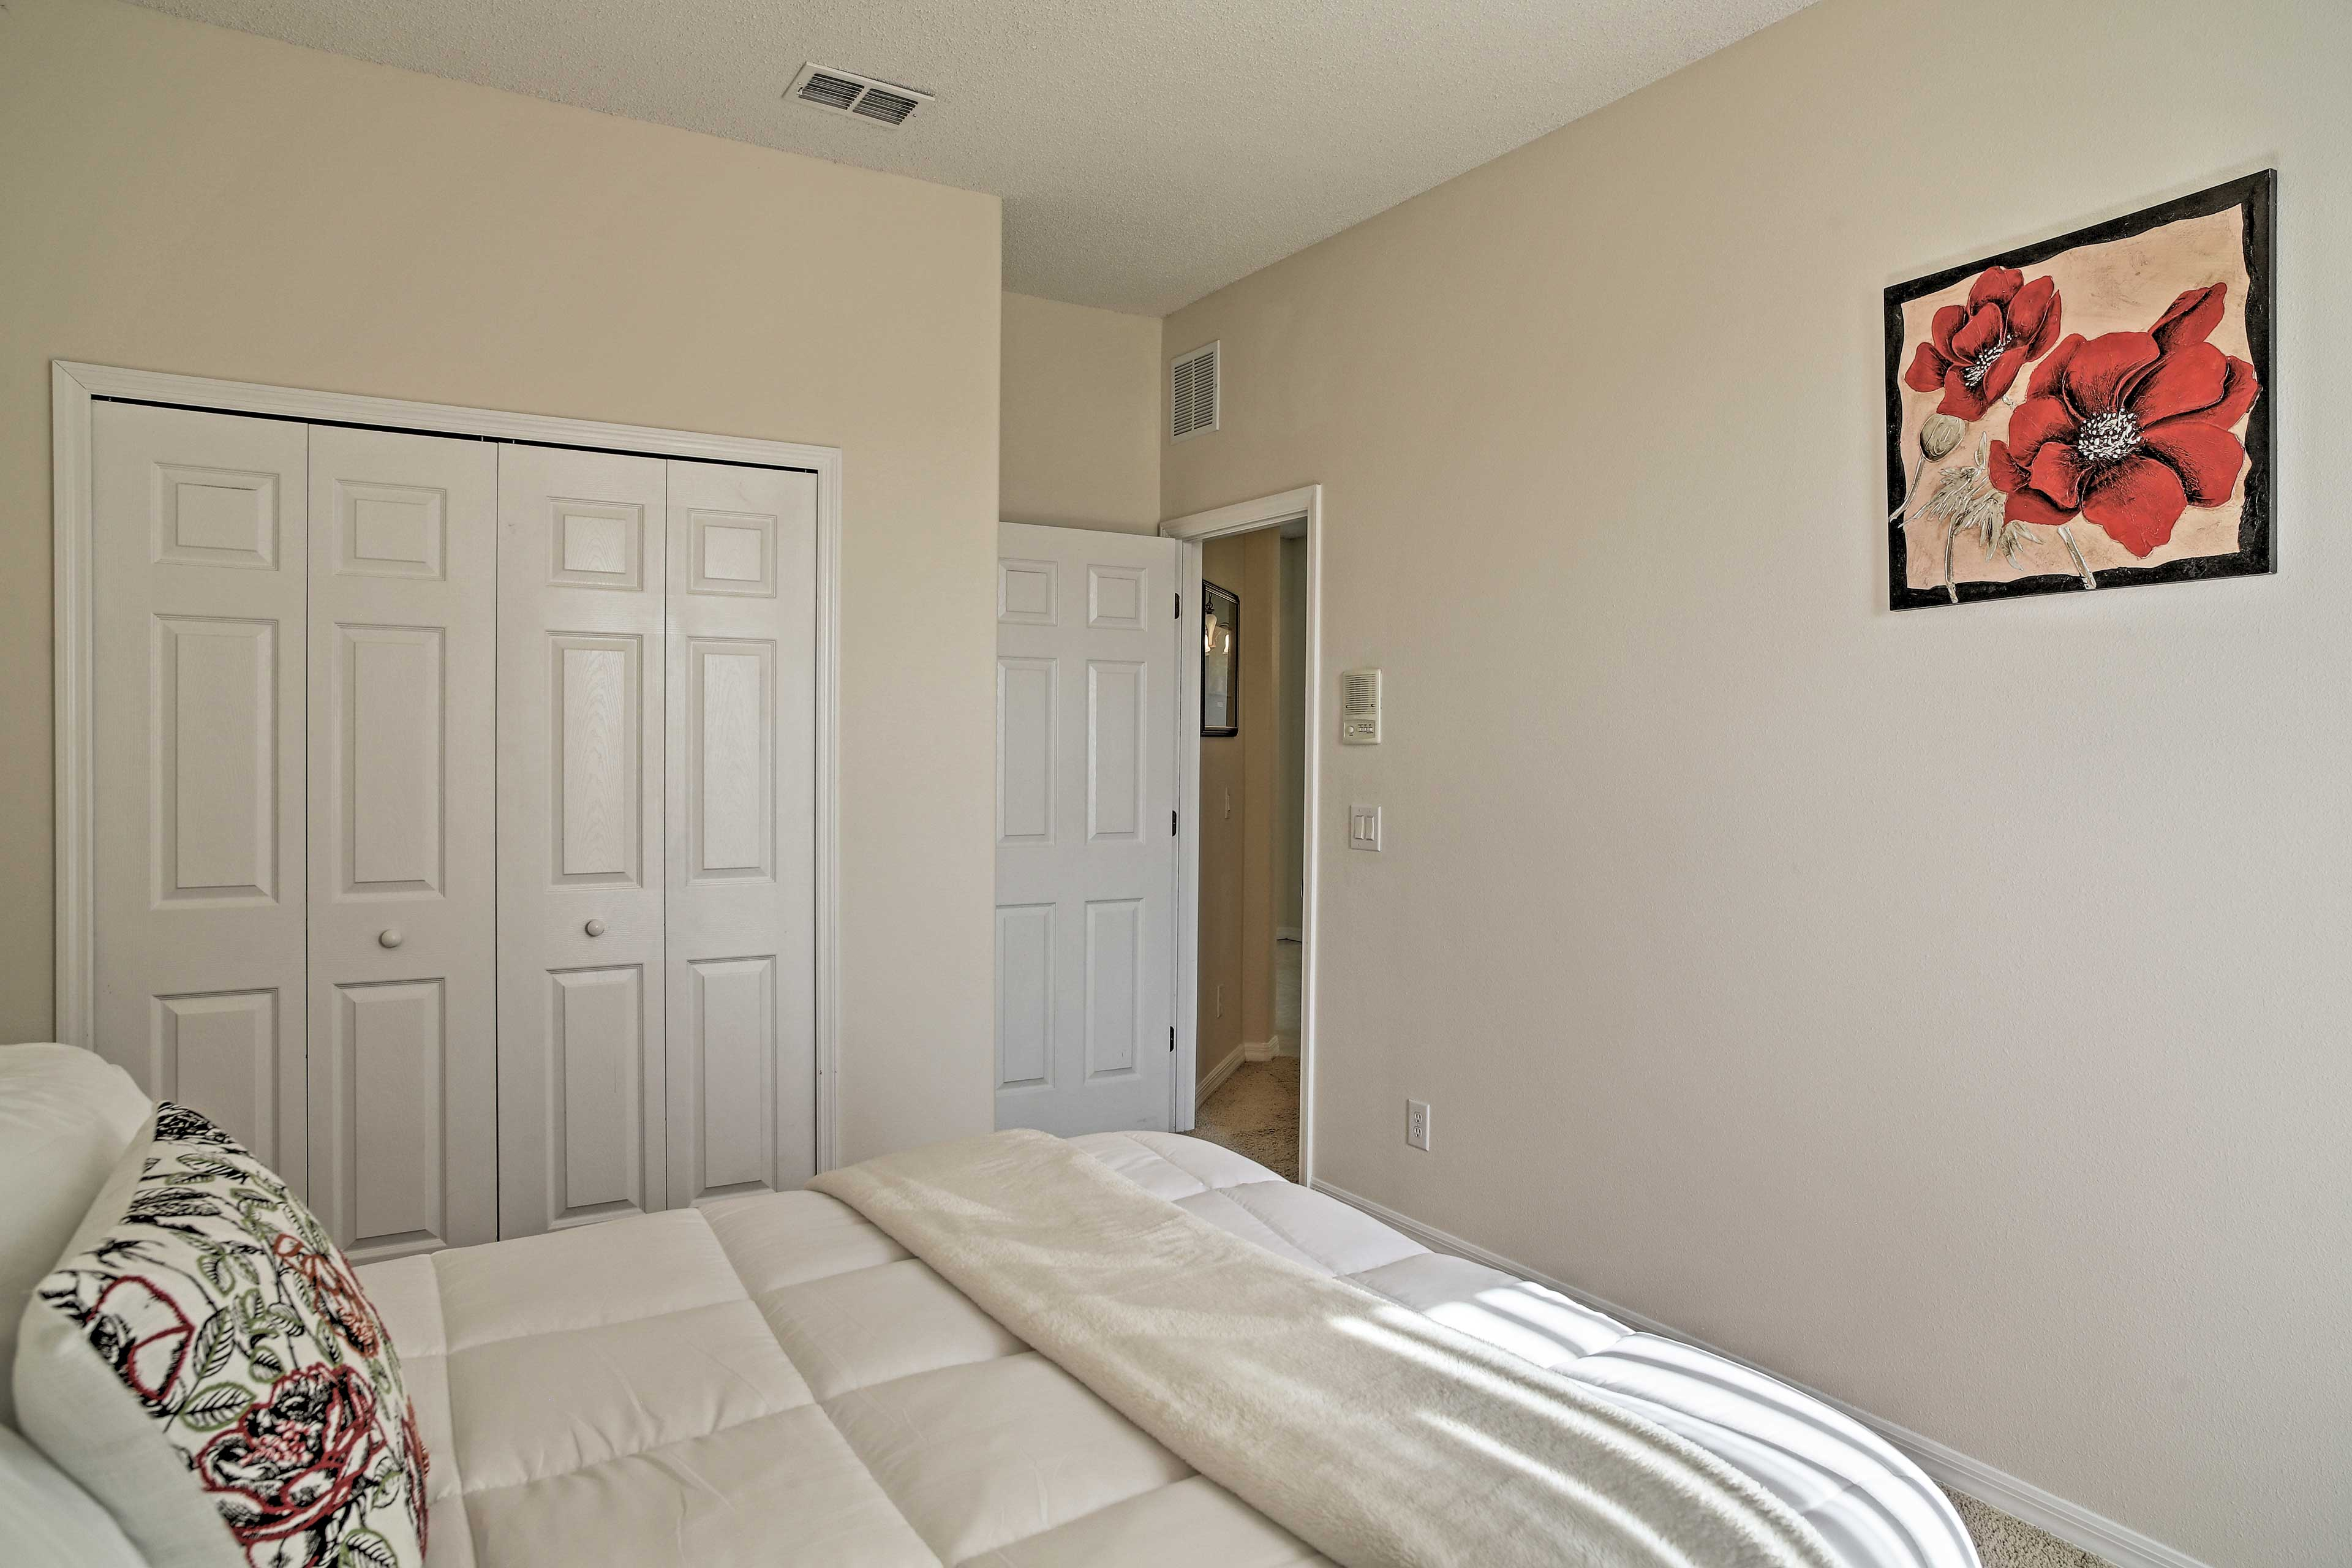 Each of the 4 guest bedrooms can sleep 2 each.